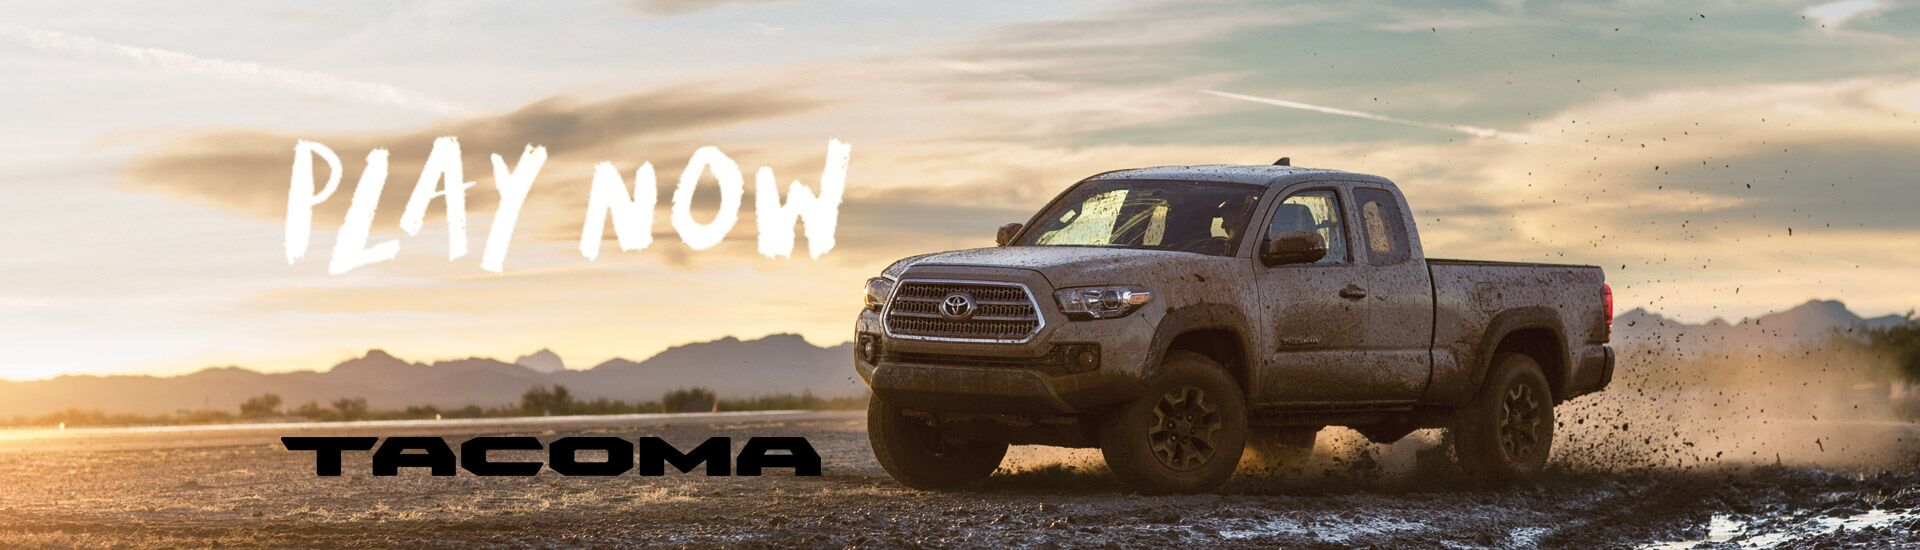 Toyota Tacoma-Play Now at Ackerman Toyota